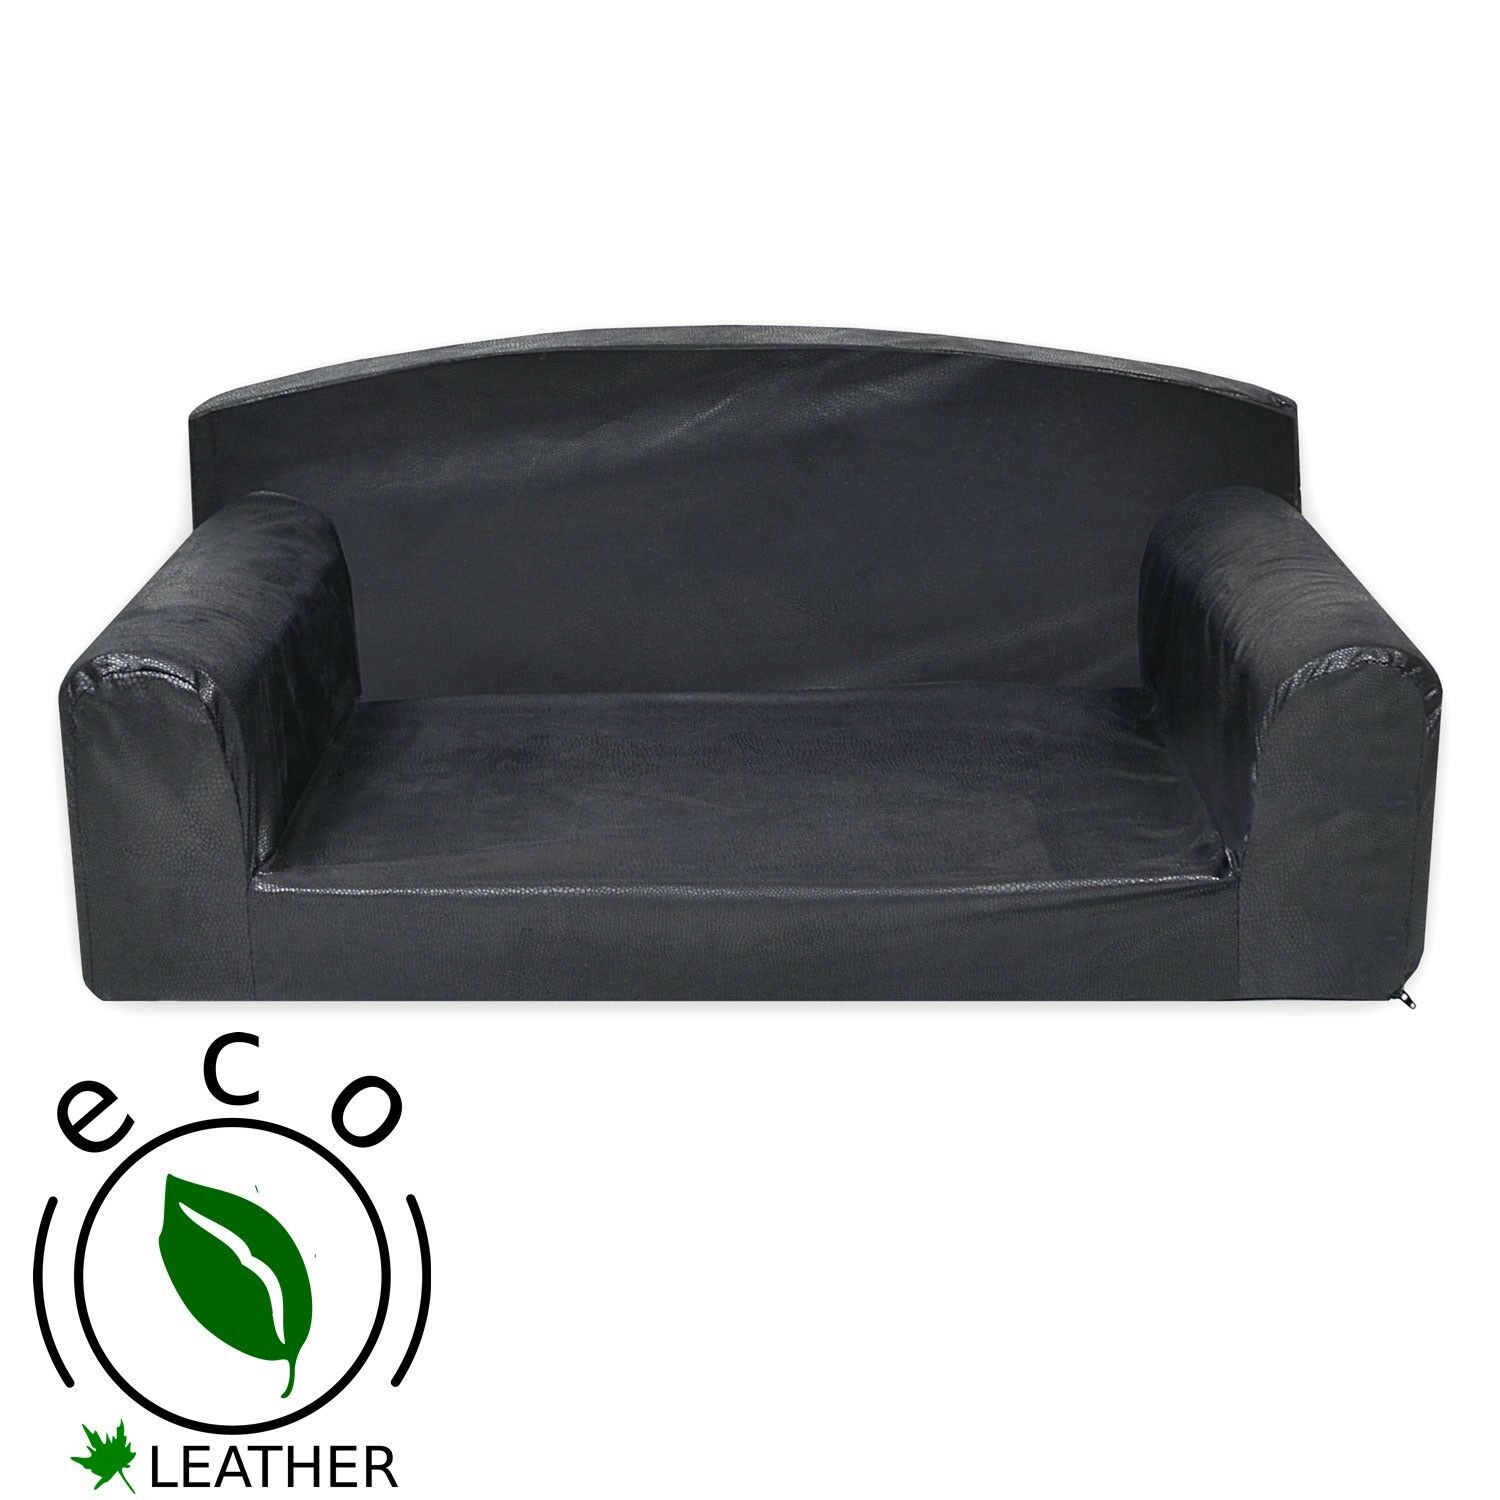 Eco Snake- Faux Leather Pet Sofa. HQ Skin on Dog Settee. Durable Cat Black Couch